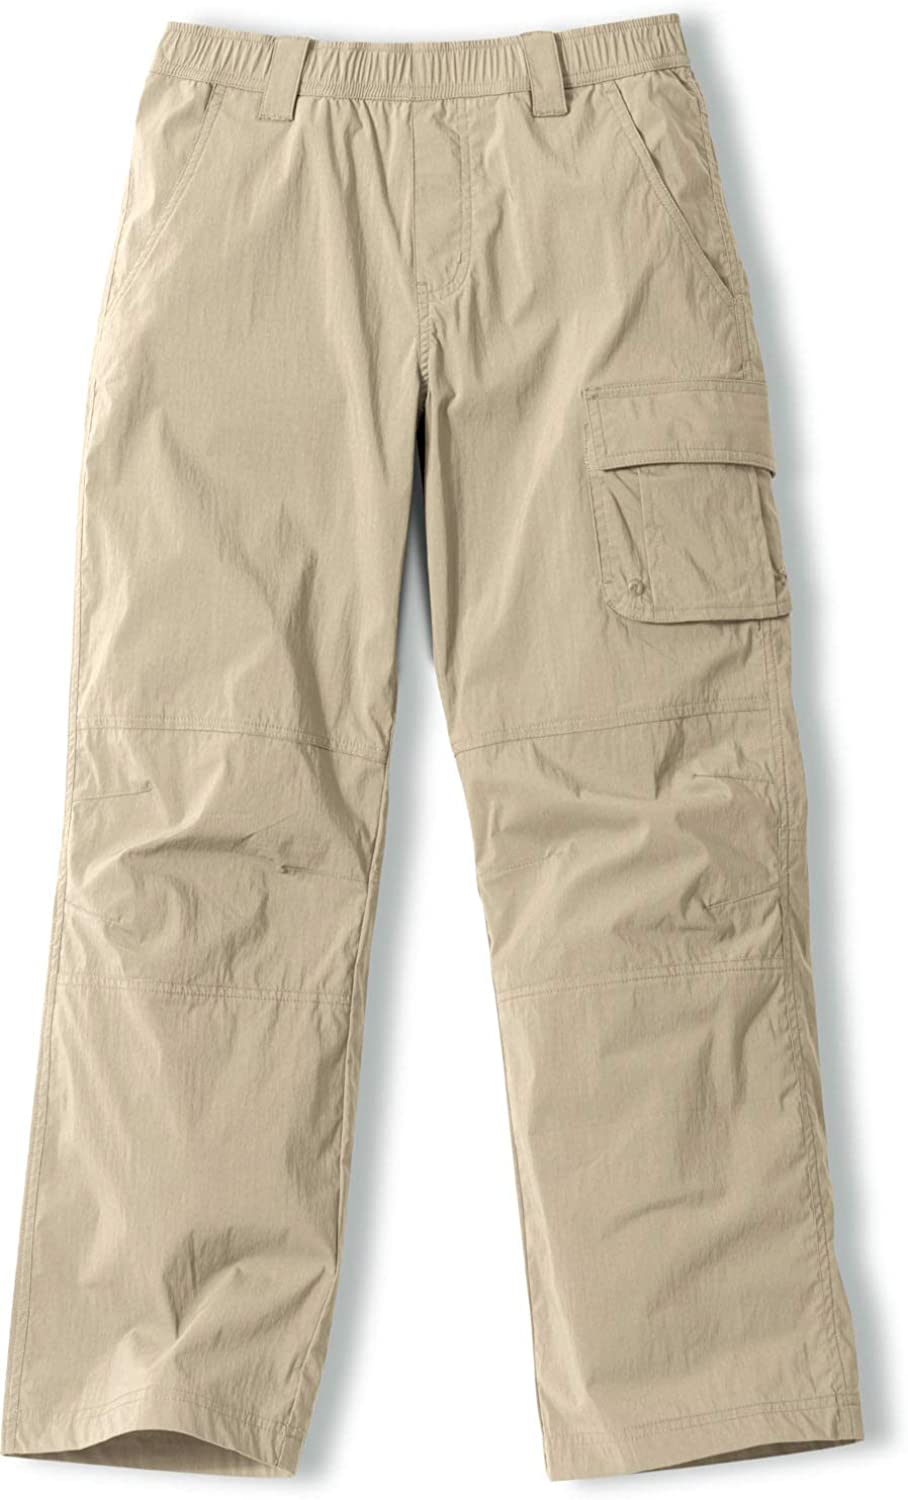 CQR Kids Youth Hiking Cargo Pants, Outdoor Camping Pants, UPF 50+ Quick Dry Regular Pants : Clothing, Shoes & Jewelry